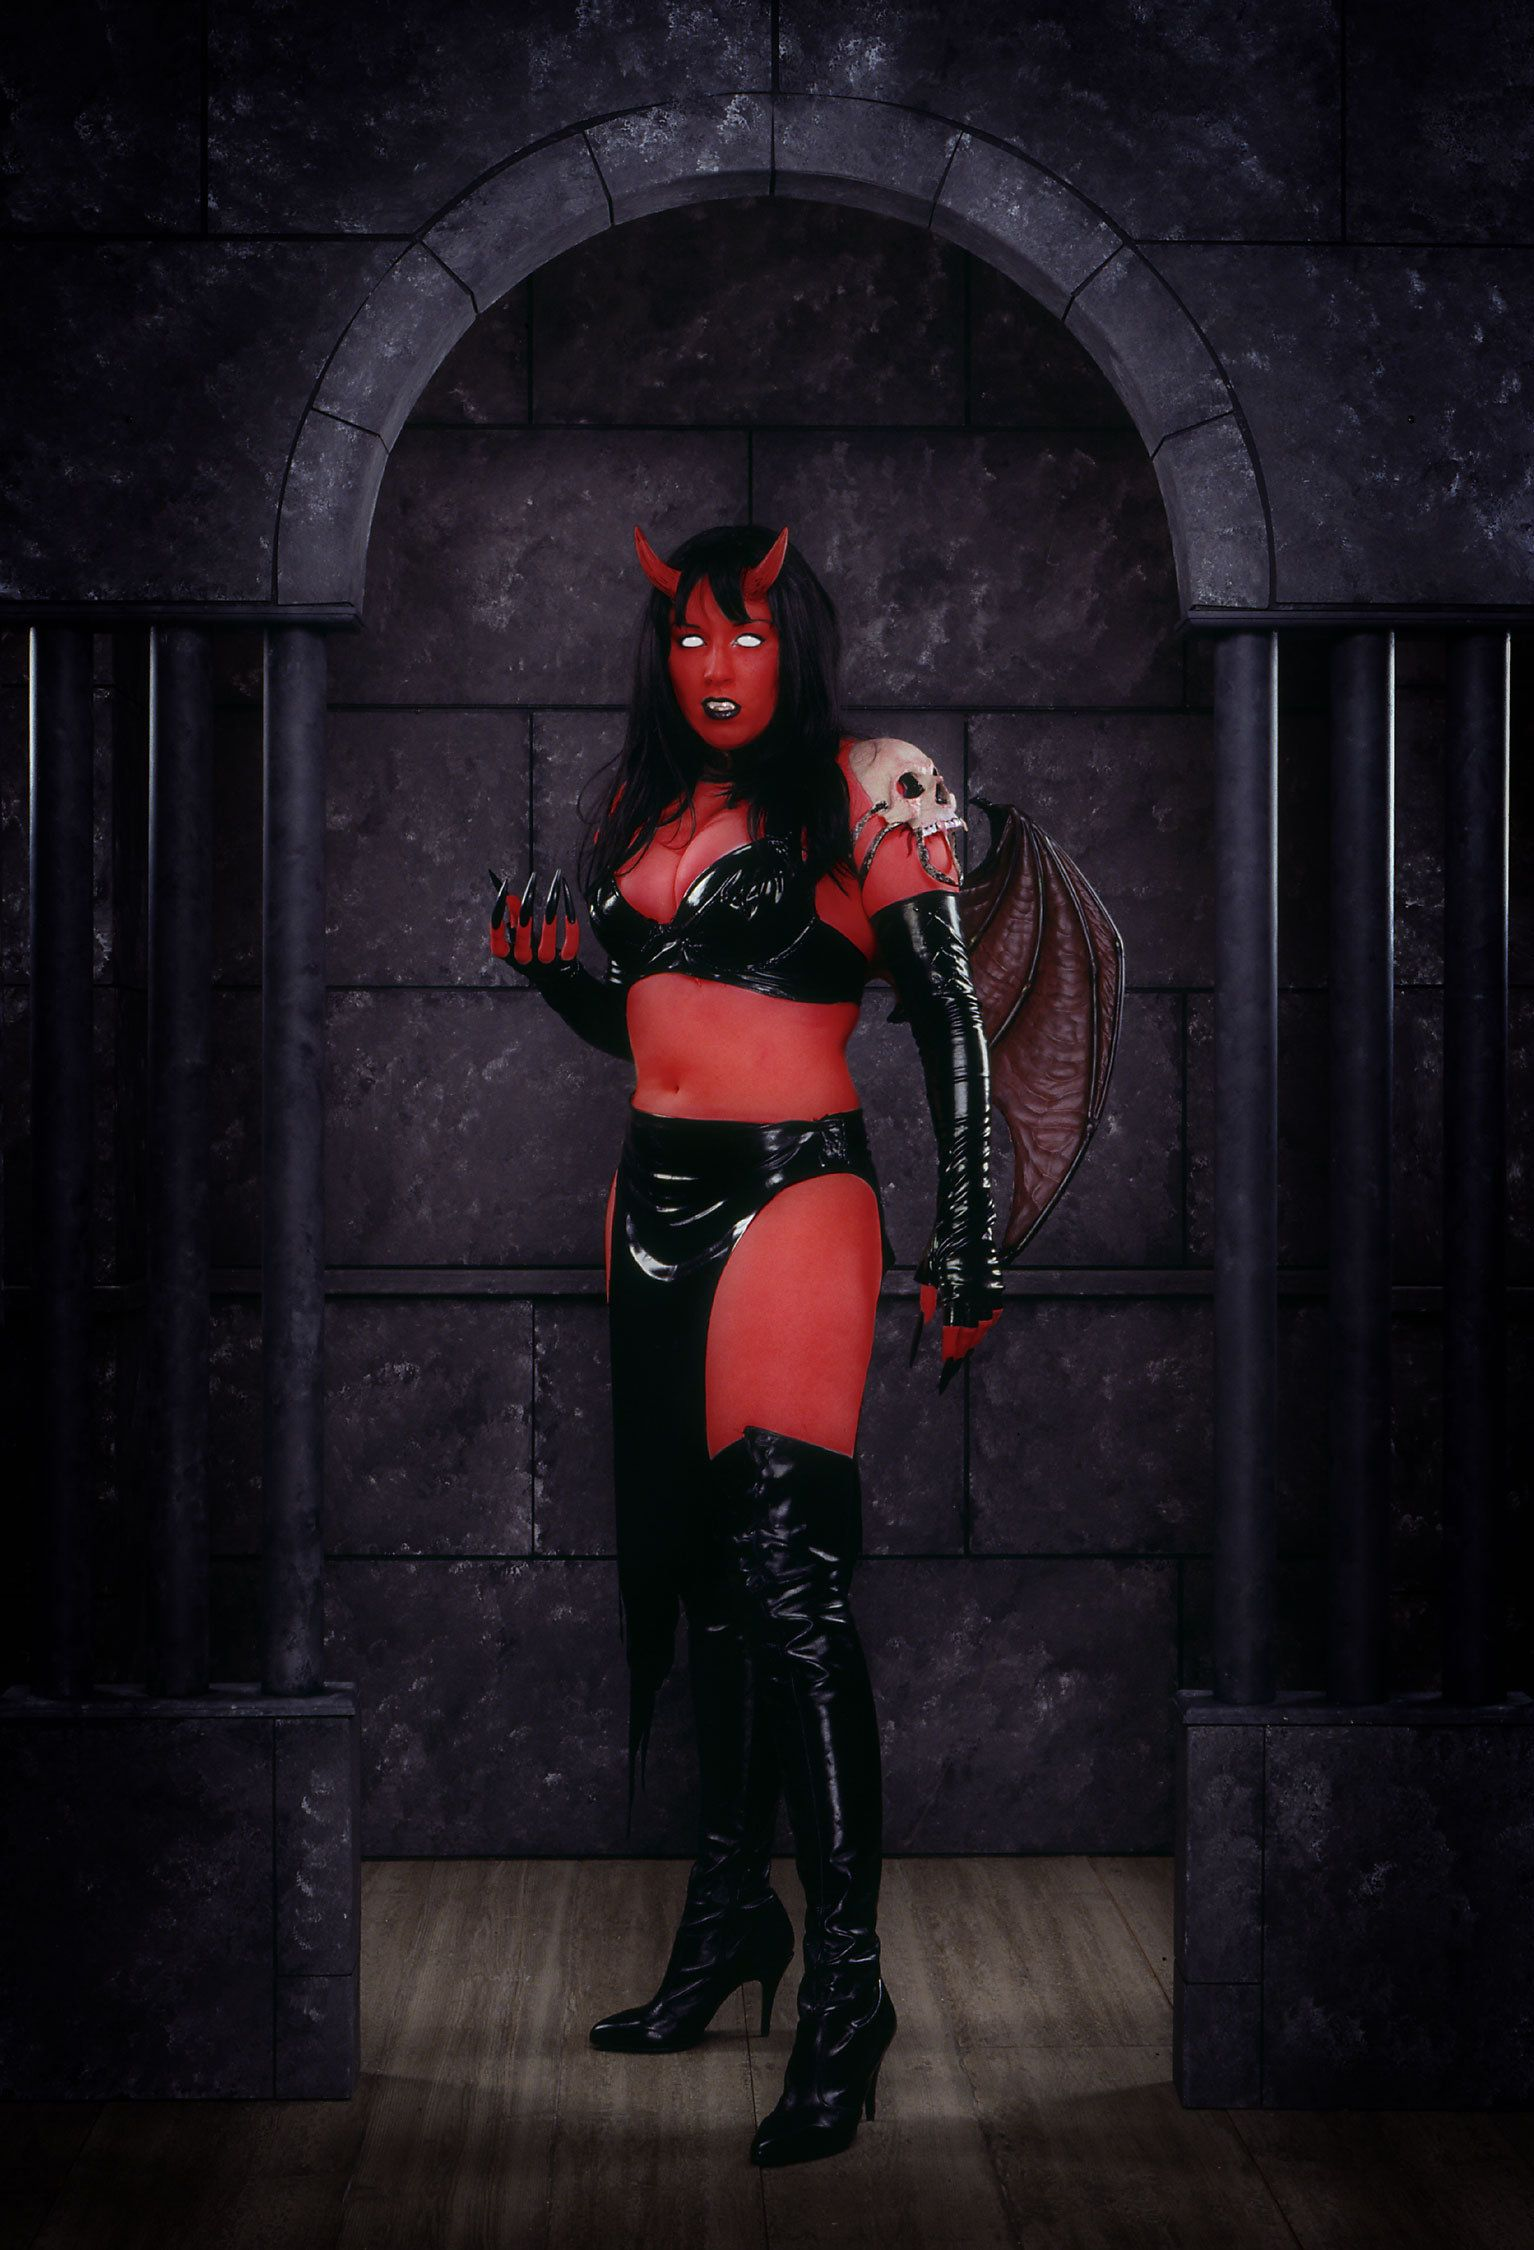 purgatori cosplay Google Search Video game characters